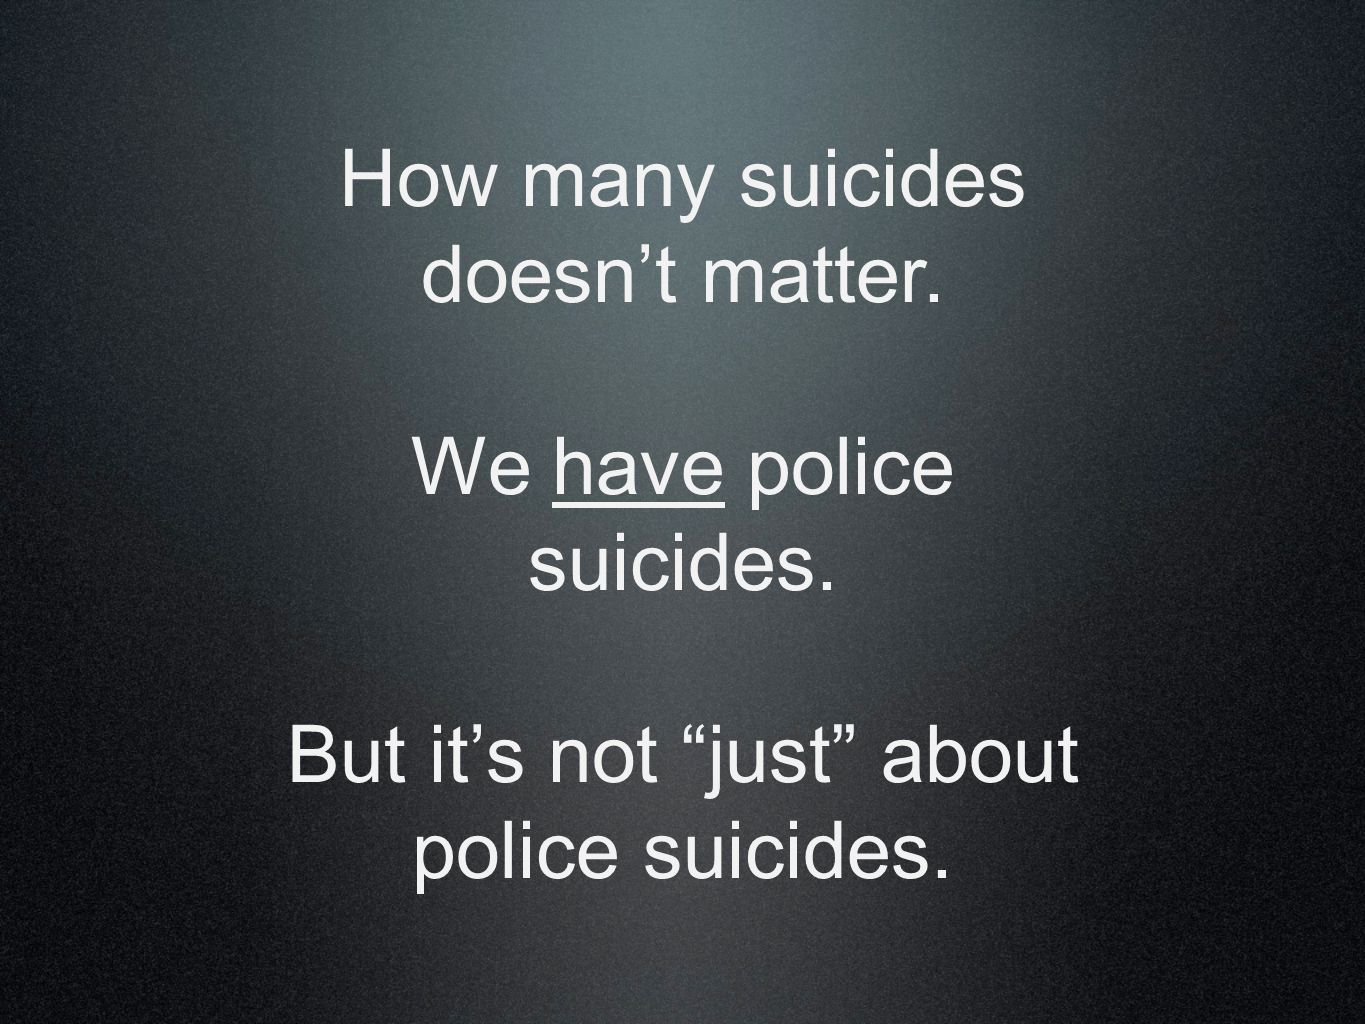 How many suicides doesn't matter. We have police suicides.